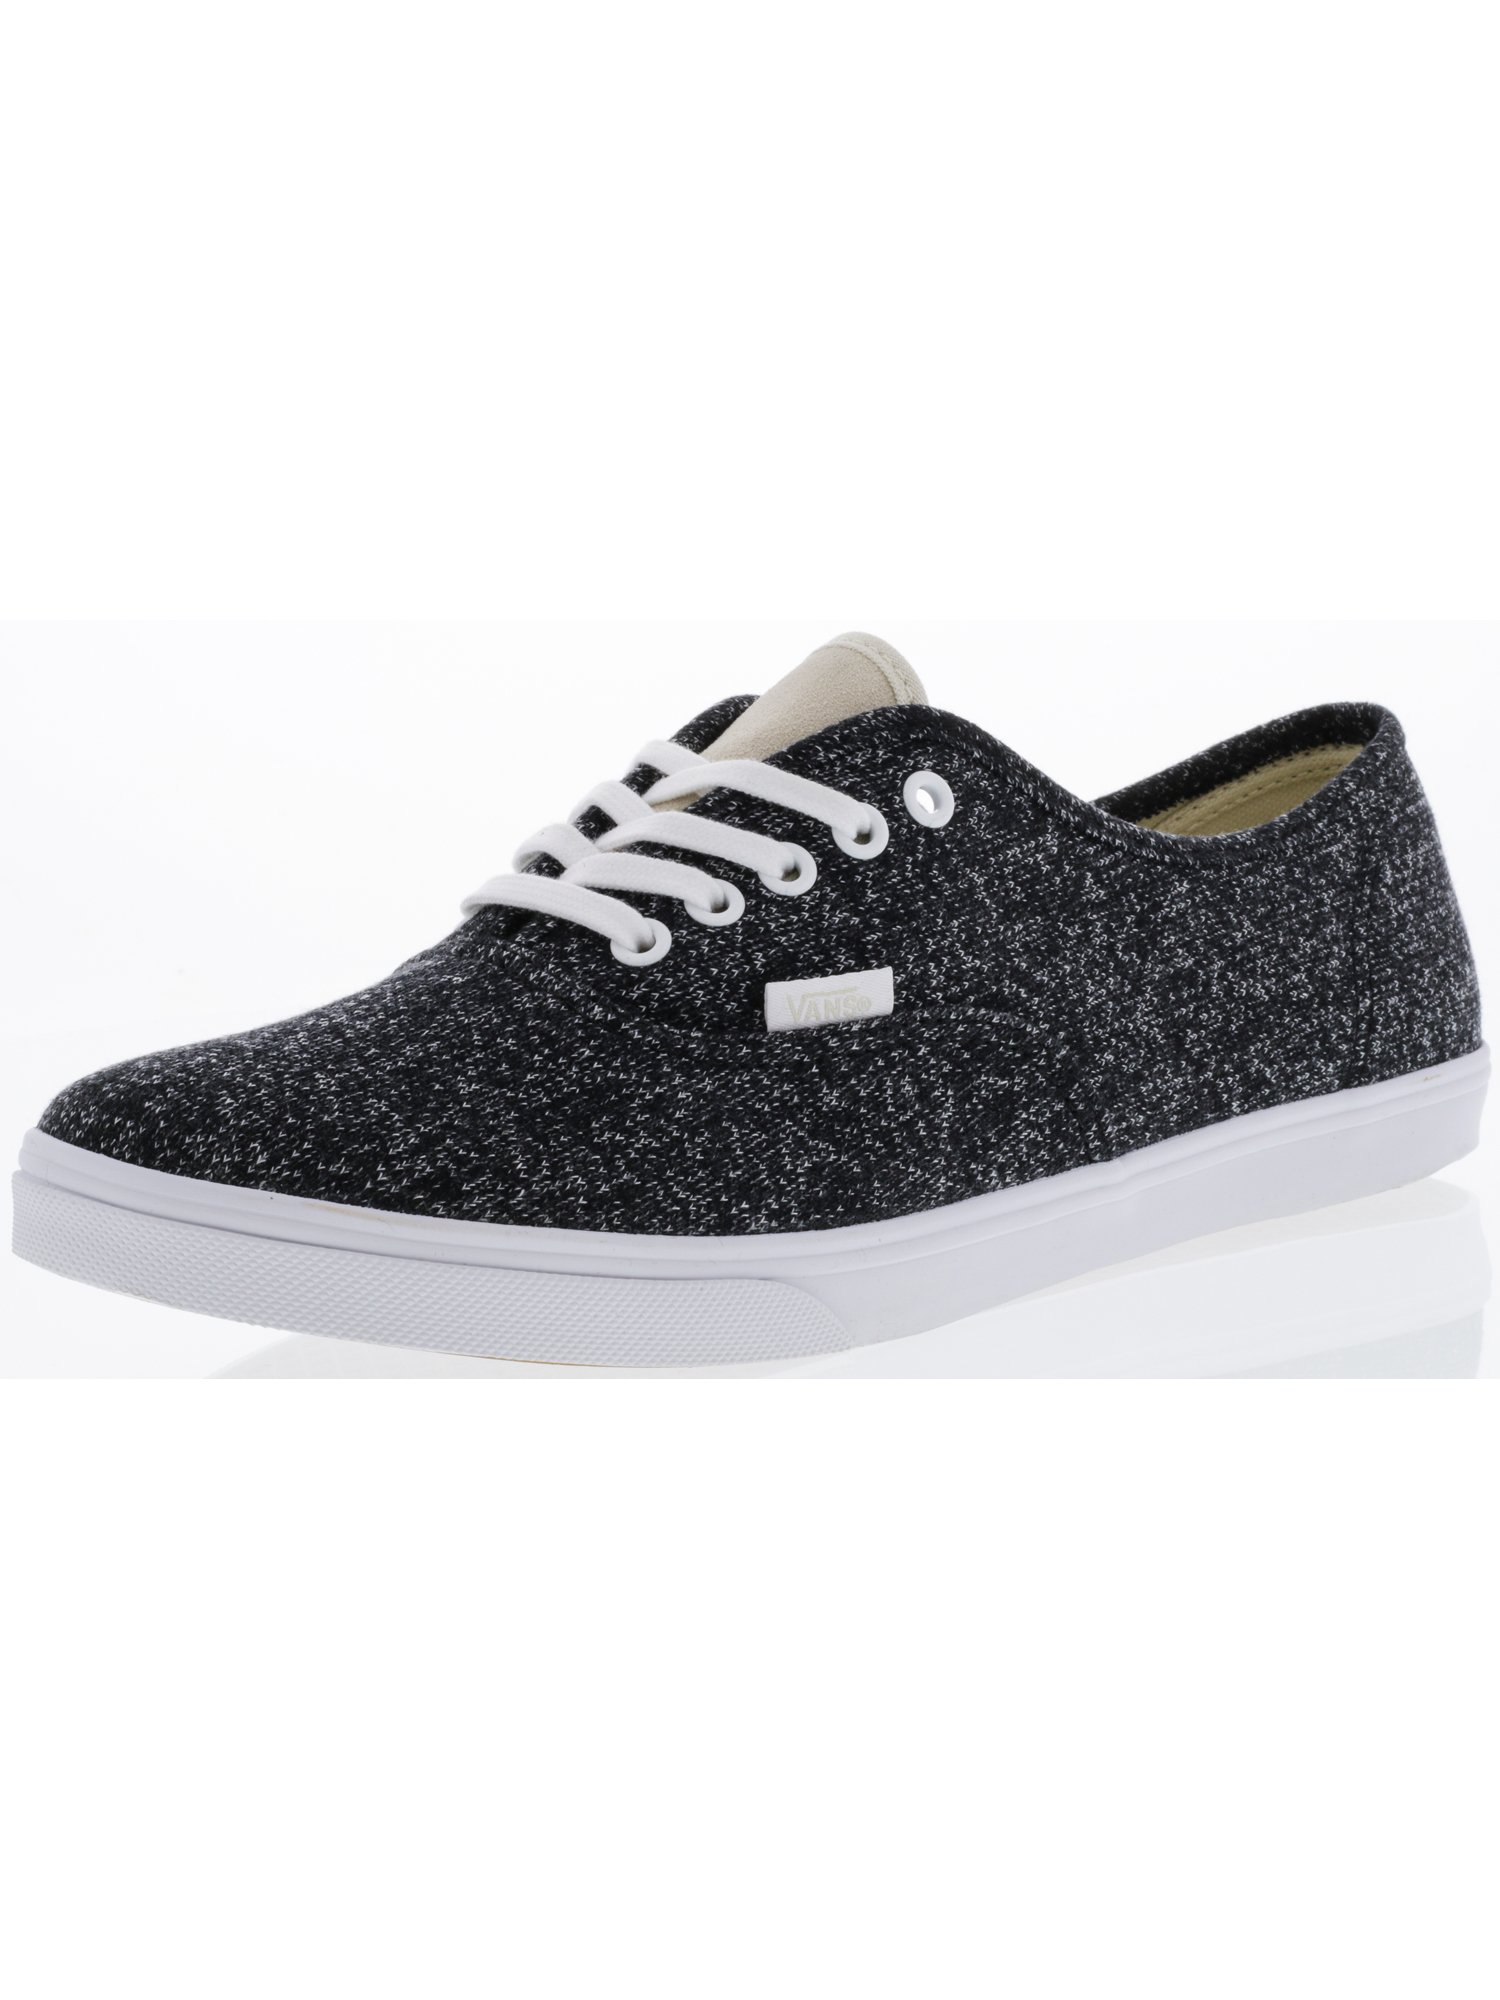 Vans Authentic Lo Pro J And S Black / True White Ankle-High Fabric Skateboarding Shoe - 9.5M 8M